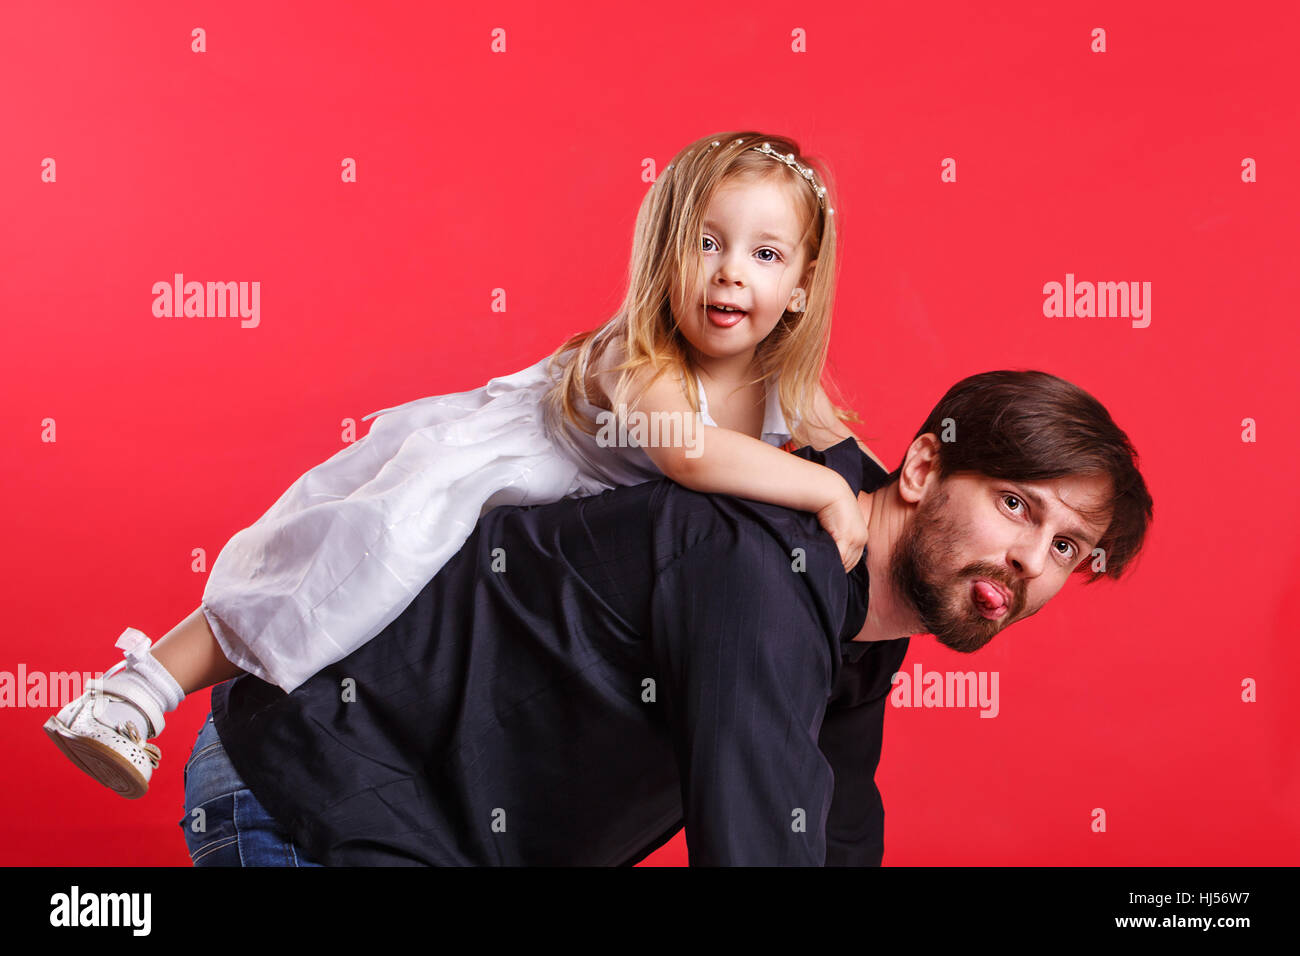 Father and daughter piggyback. They show tongues. Emotional games with your child. Family fun. The joy of communication. - Stock Image